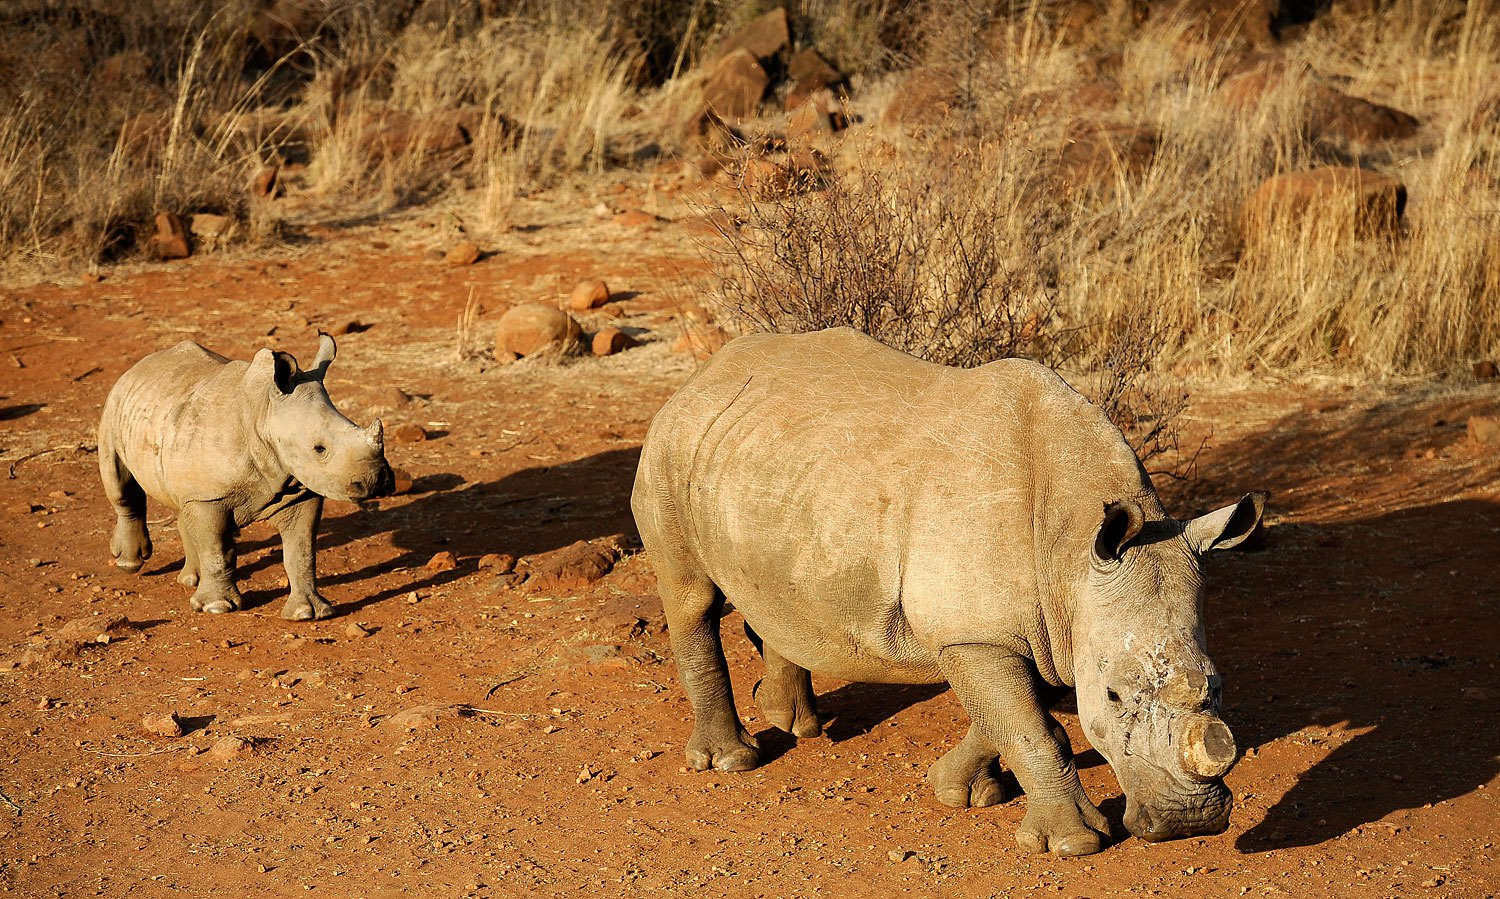 A black dehorned rhinoceros is followed by a calf on August 3, 2012 at the Bona Bona Game Reserve, southeast of Johannesburg, South Africa. The western black rhino subspecies (not pictured) has now been officially declared extinct.